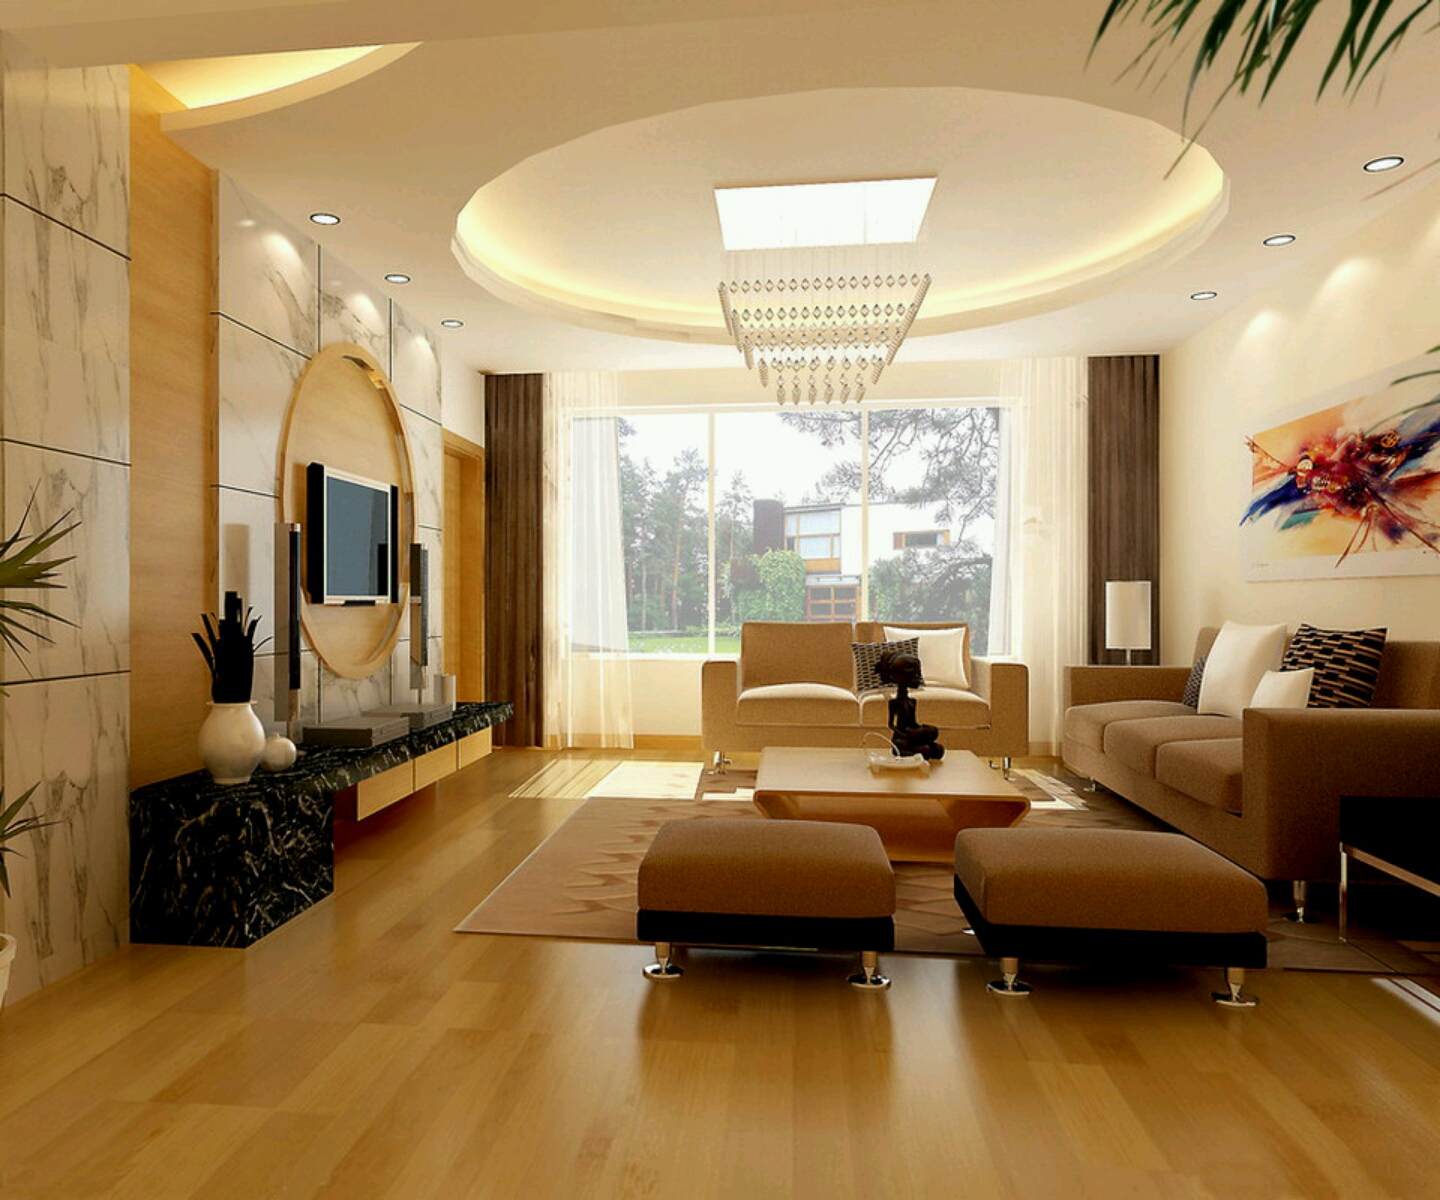 Modern interior decoration living rooms ceiling designs for Room decor modern